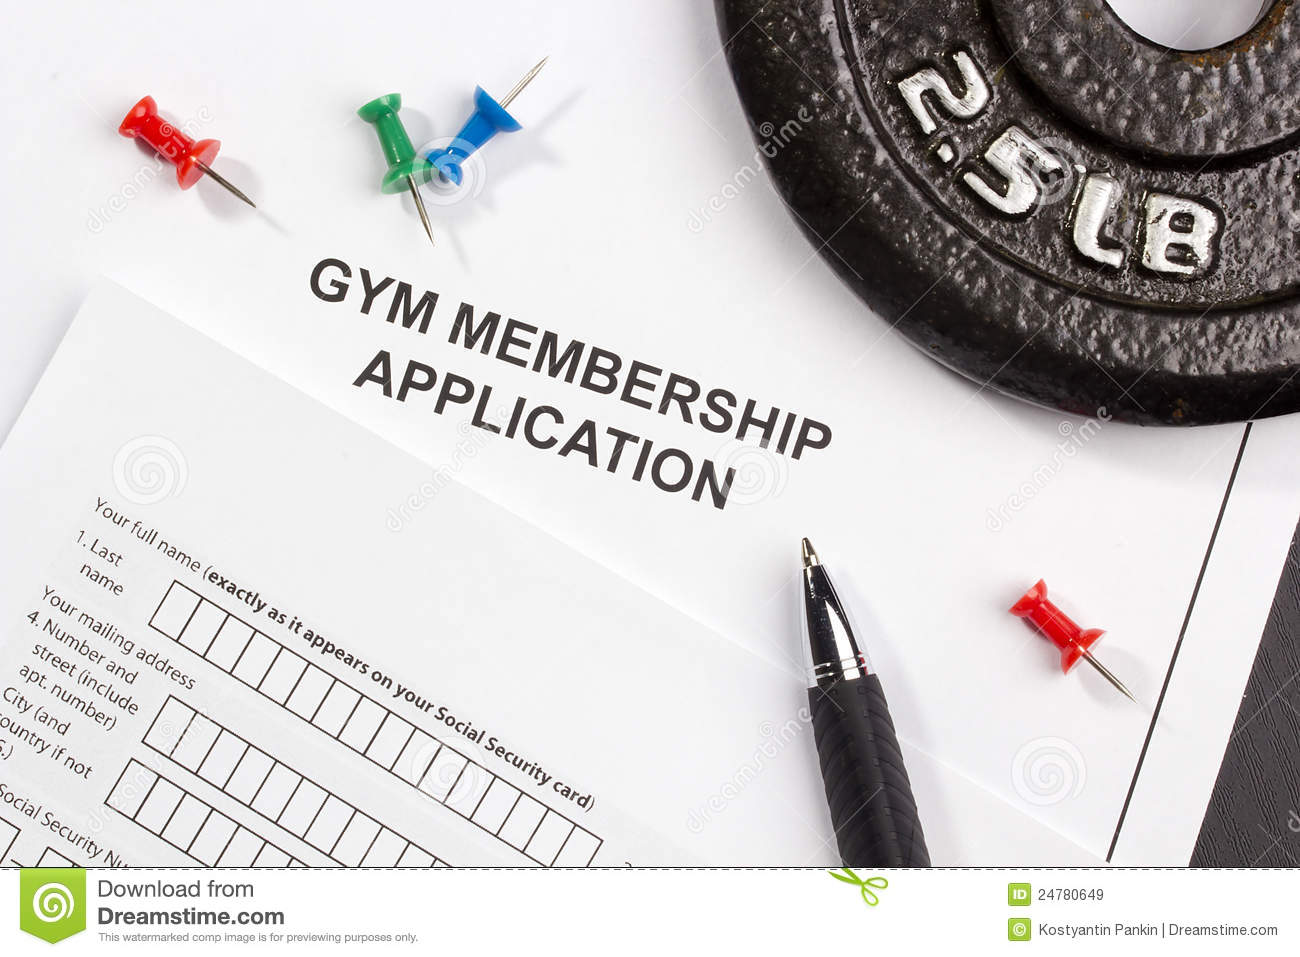 Gym Membership Application Royalty Free Stock Images ...